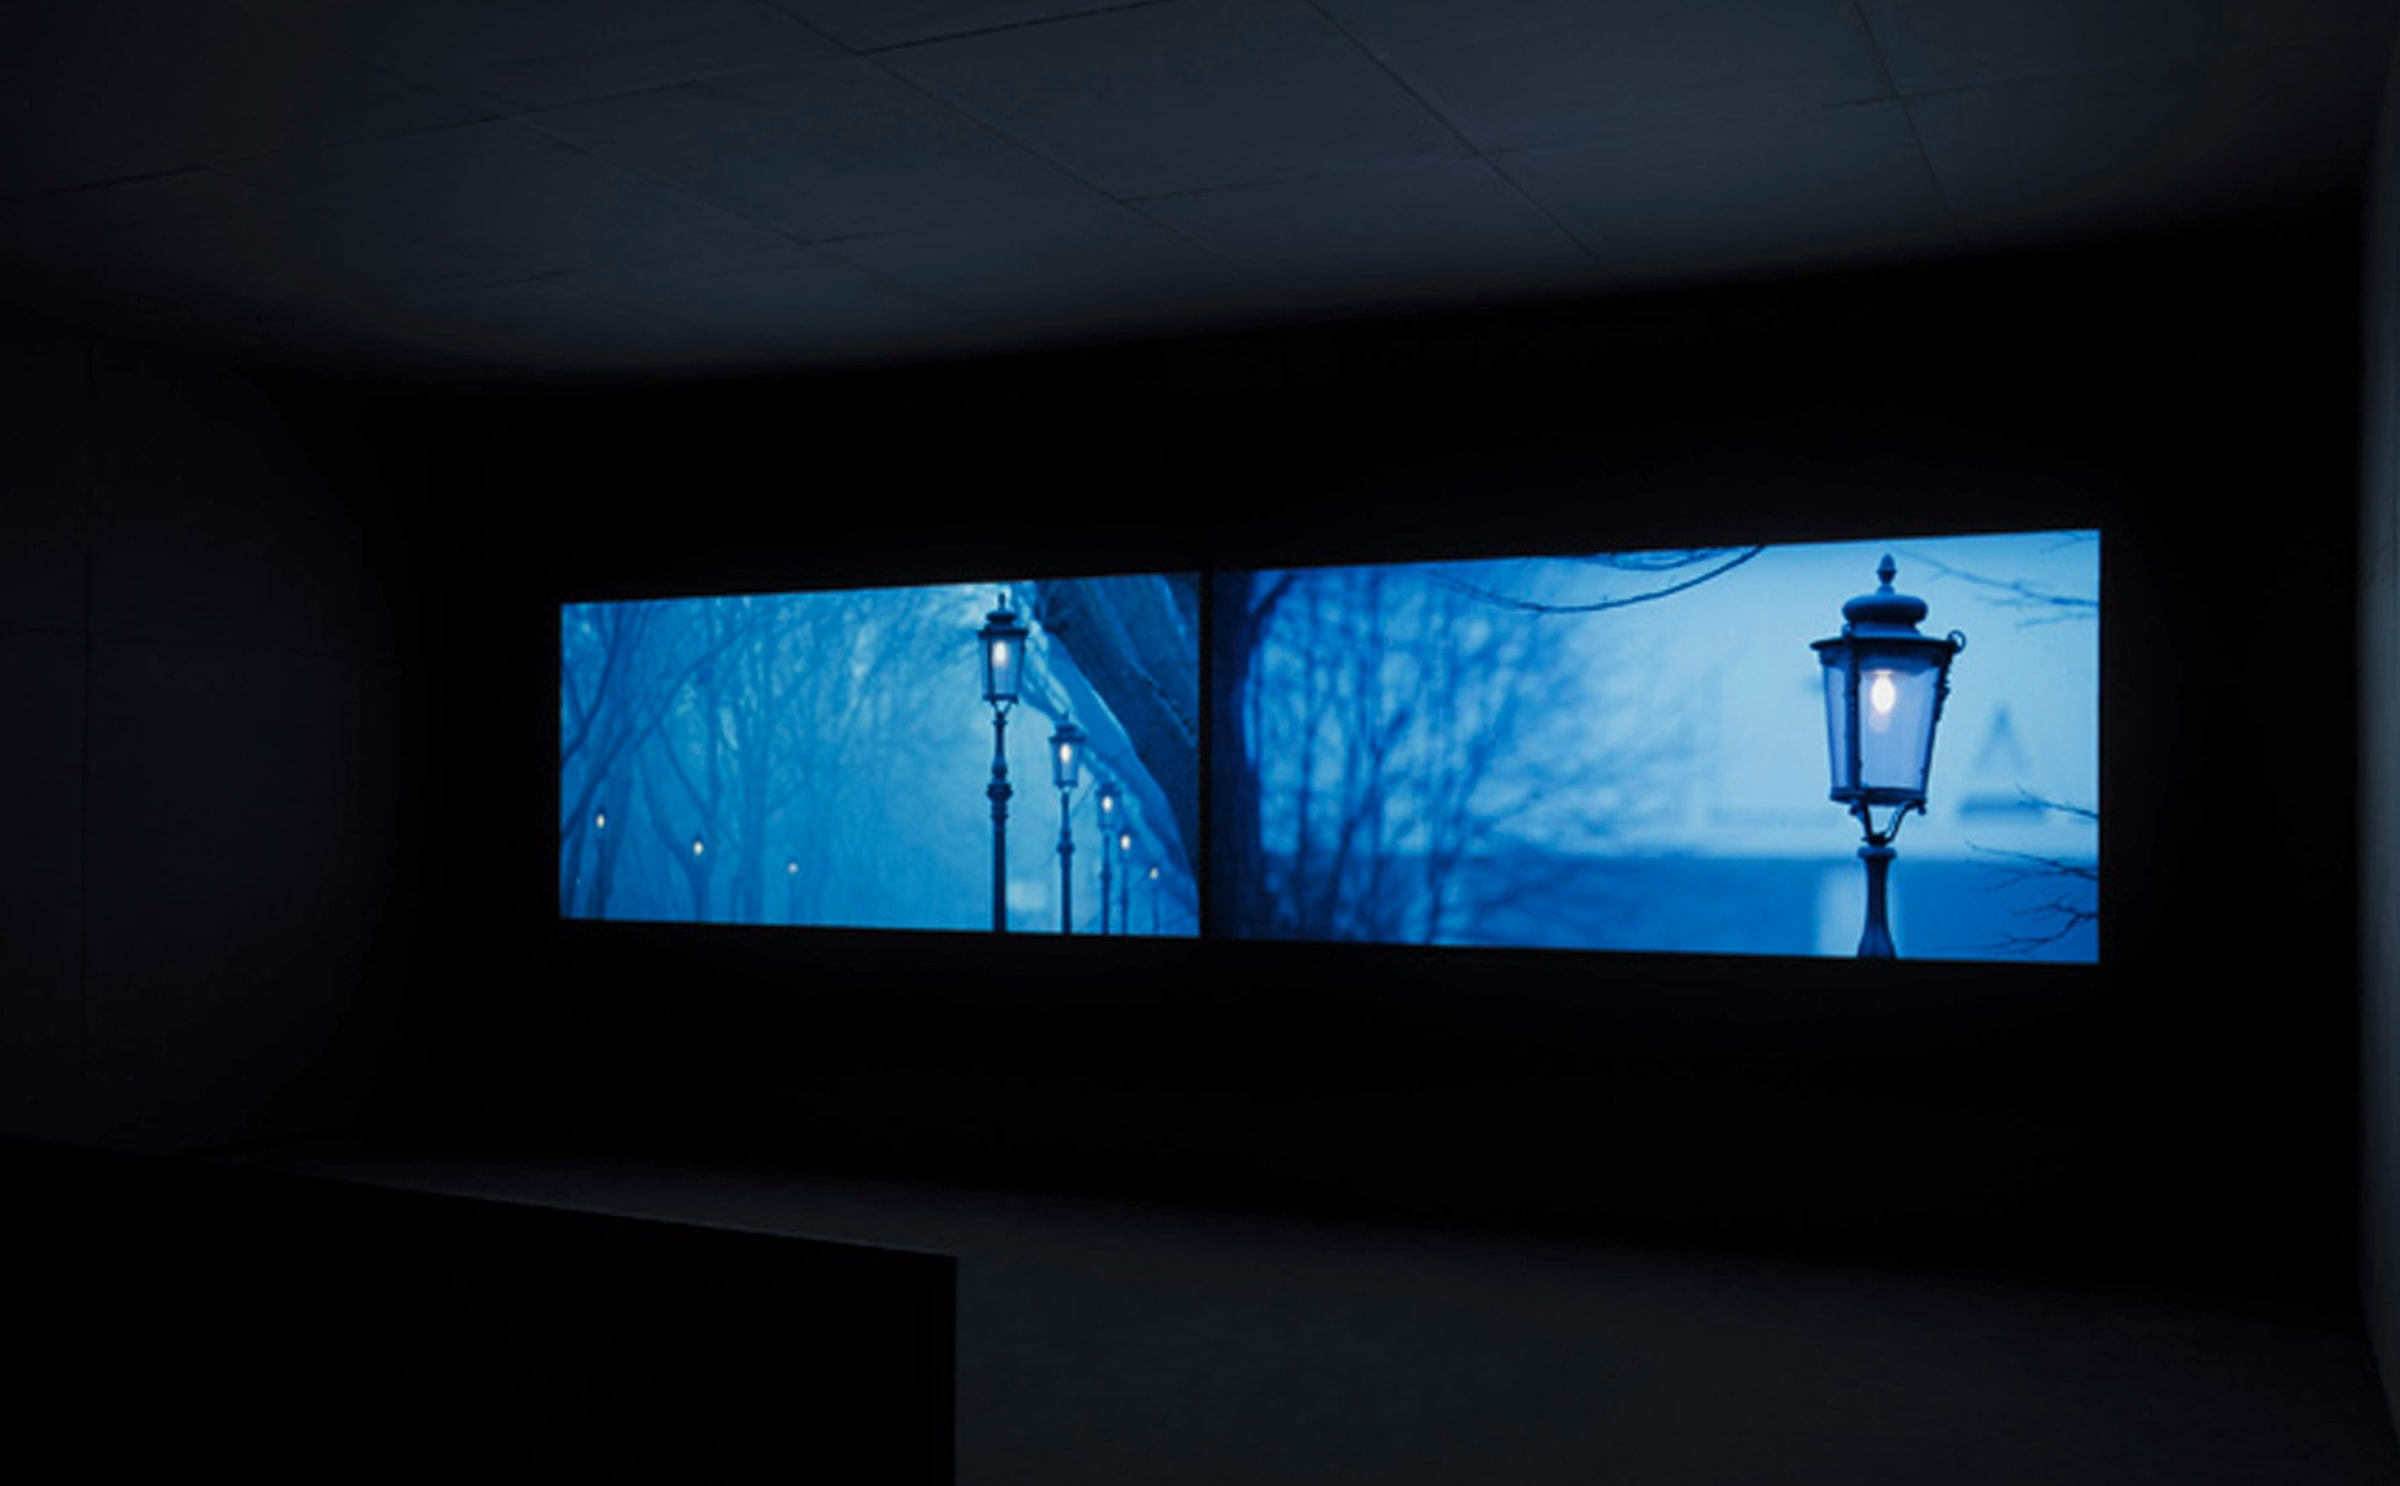 2 projection screens sit horizontally in a dark theater, both display street lamps in front of an aqua sky.